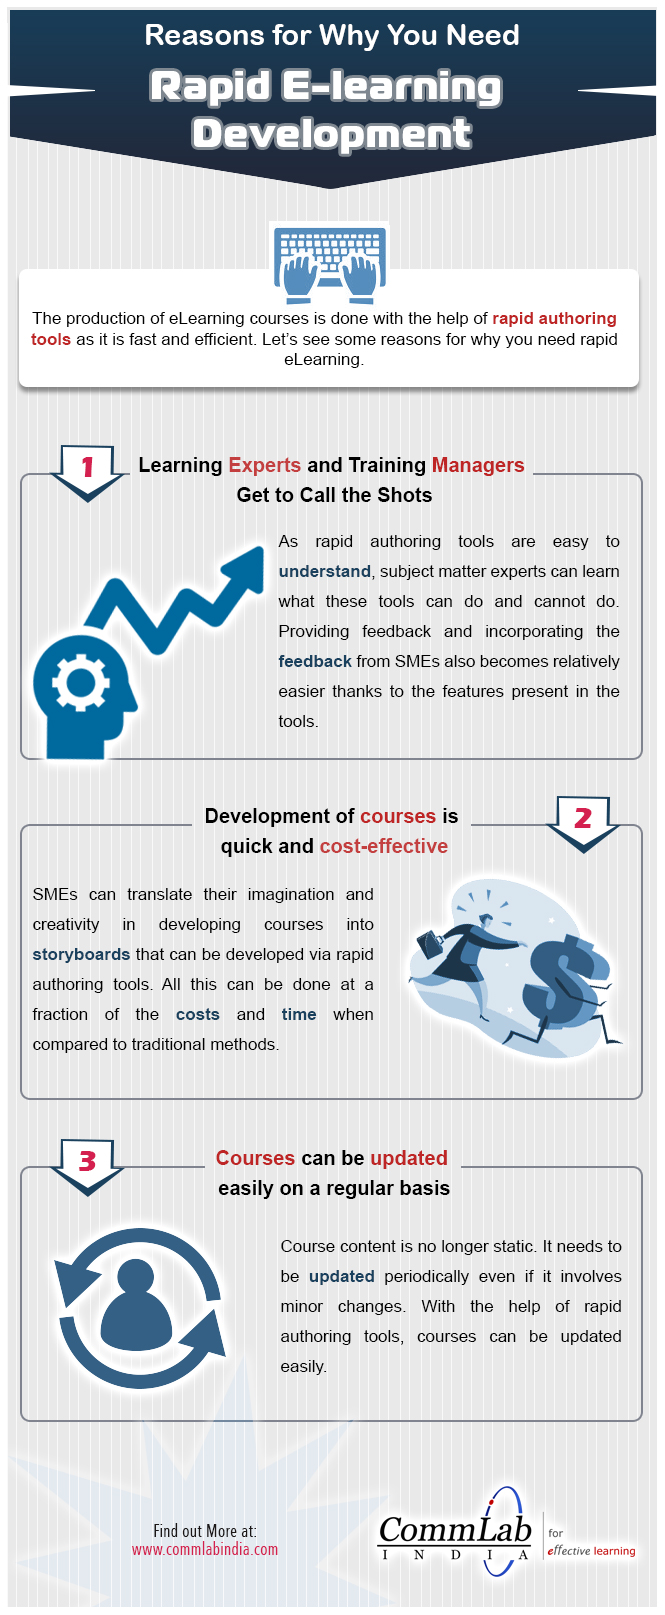 Why Do You Need Rapid E-Learning? – An Infographic